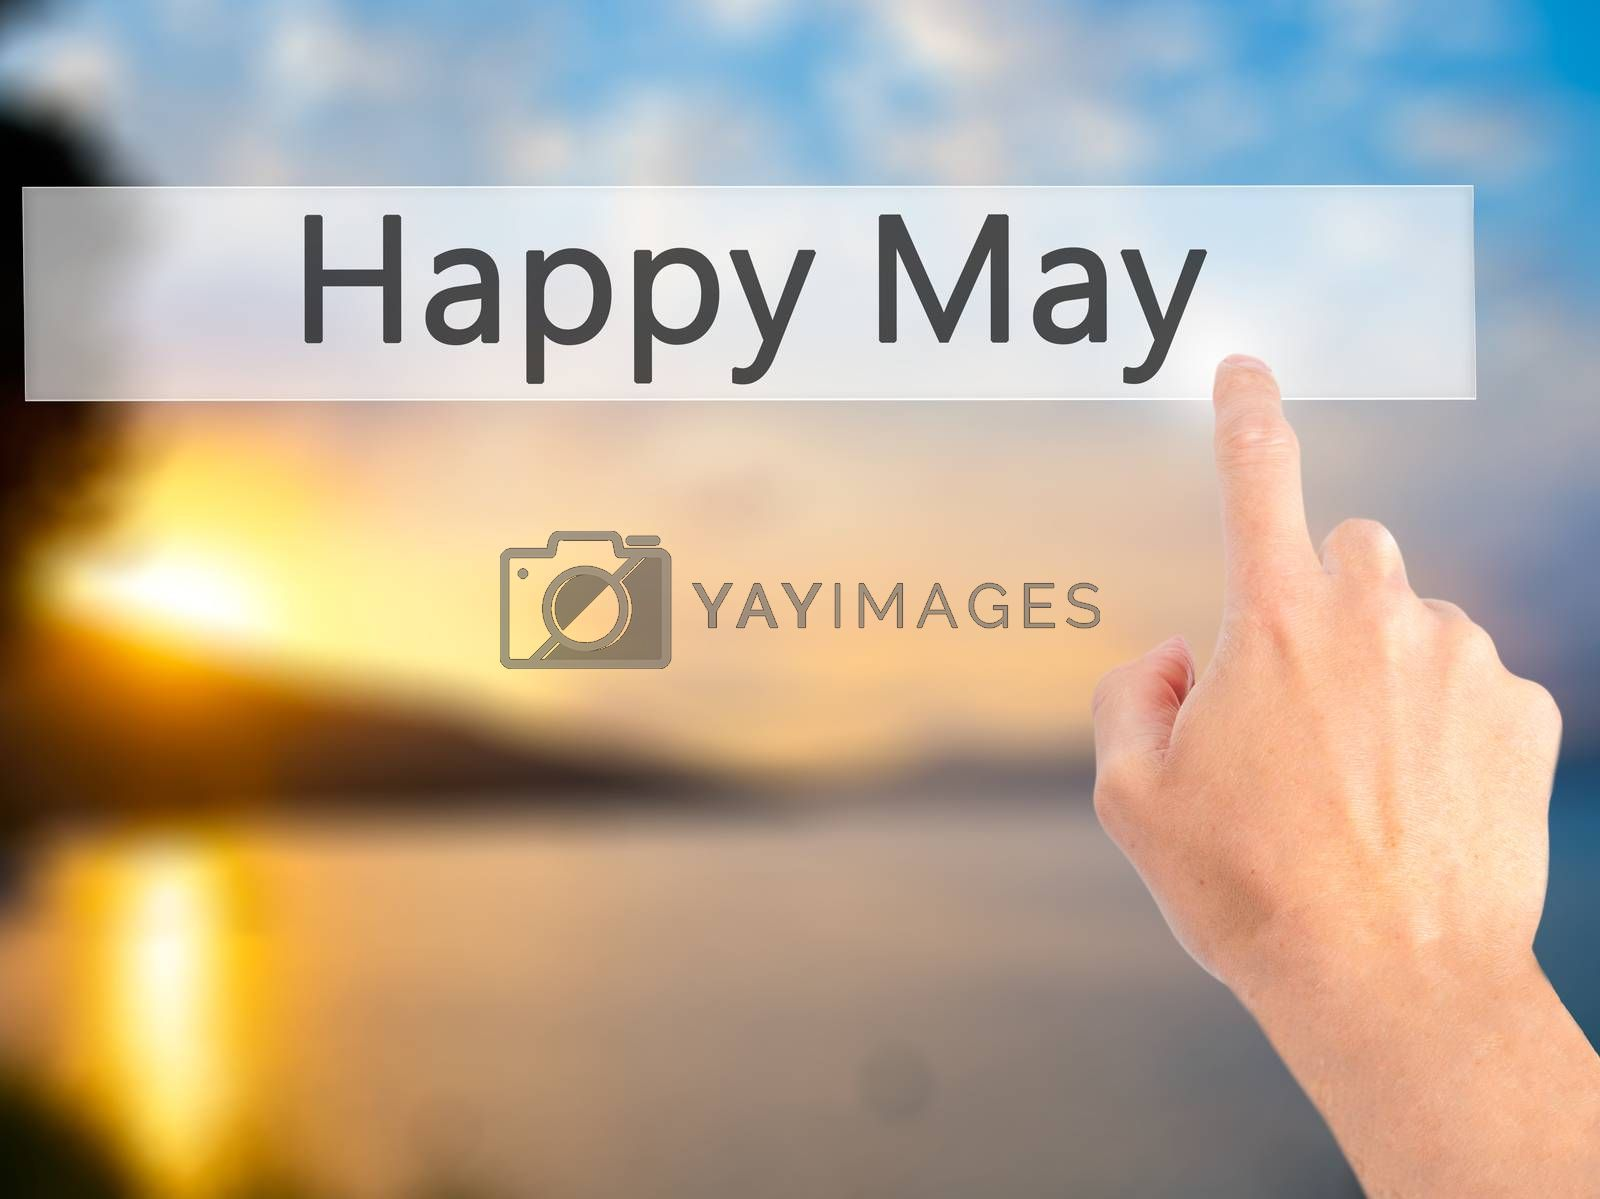 Happy May - Hand pressing a button on blurred background concept by jackald